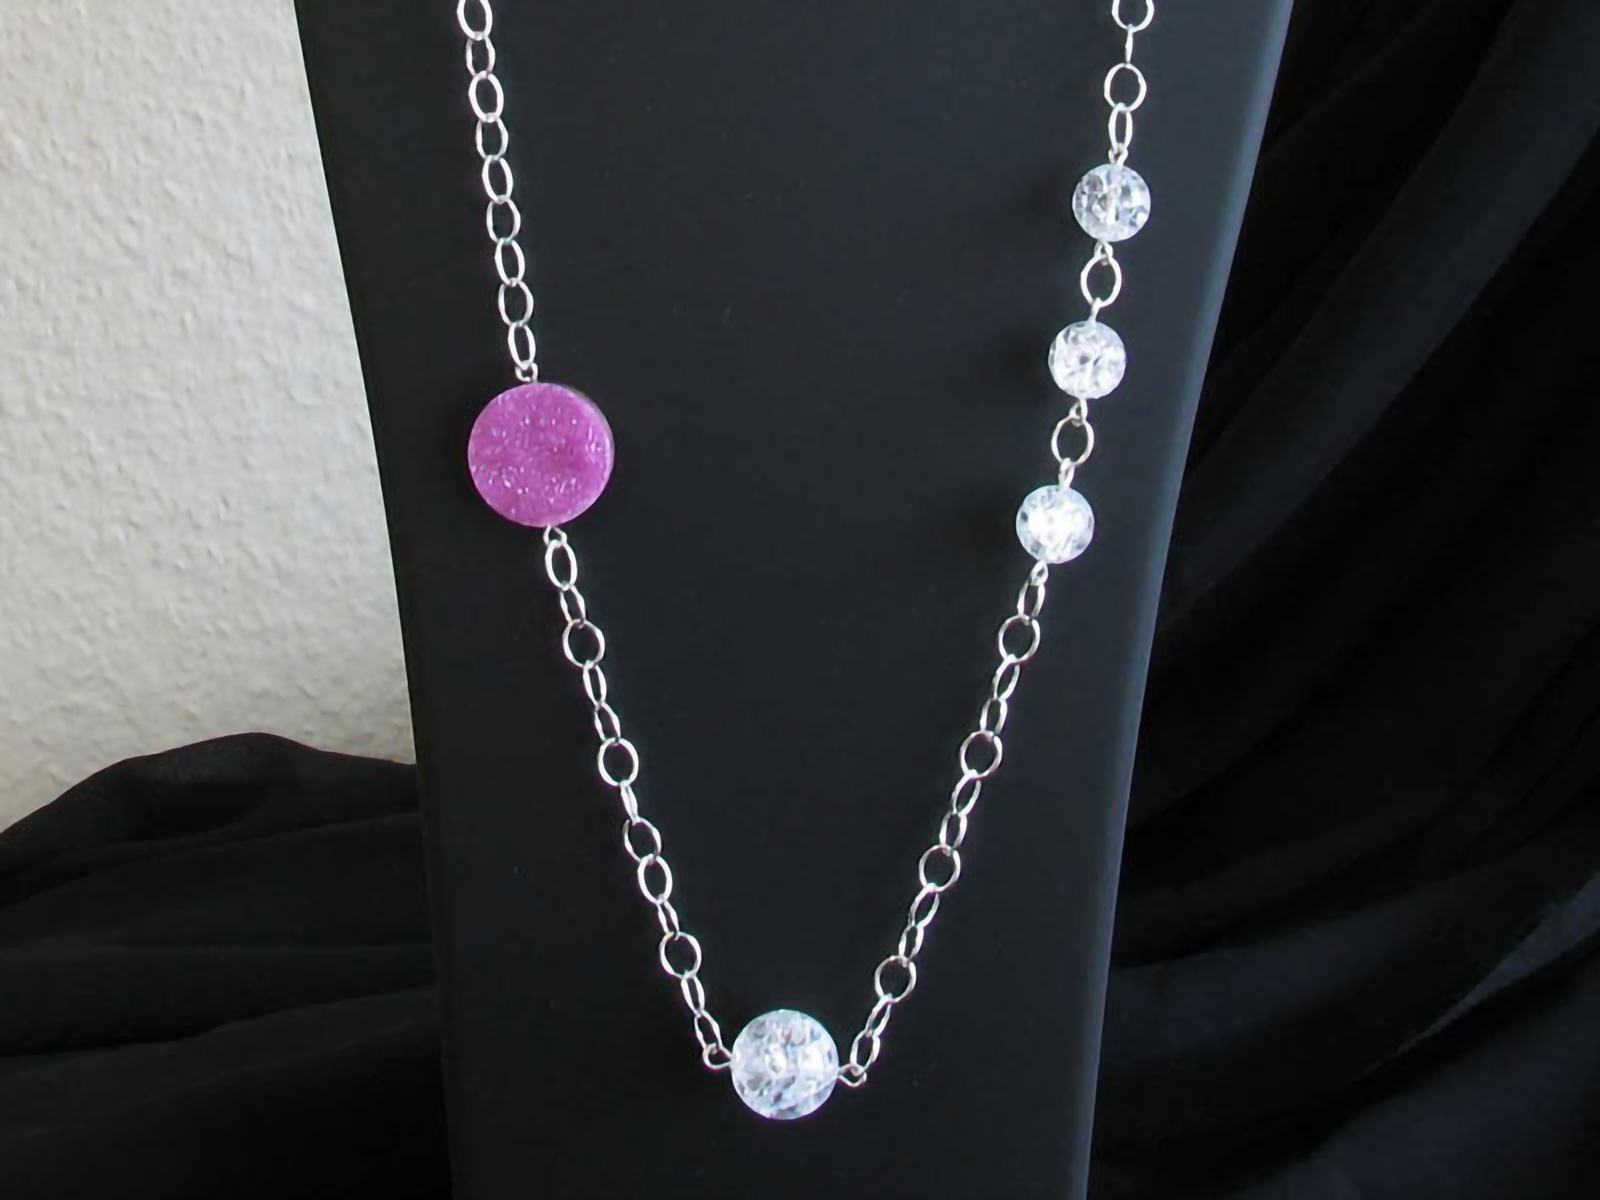 Silver necklaces combined with cut mineral stones